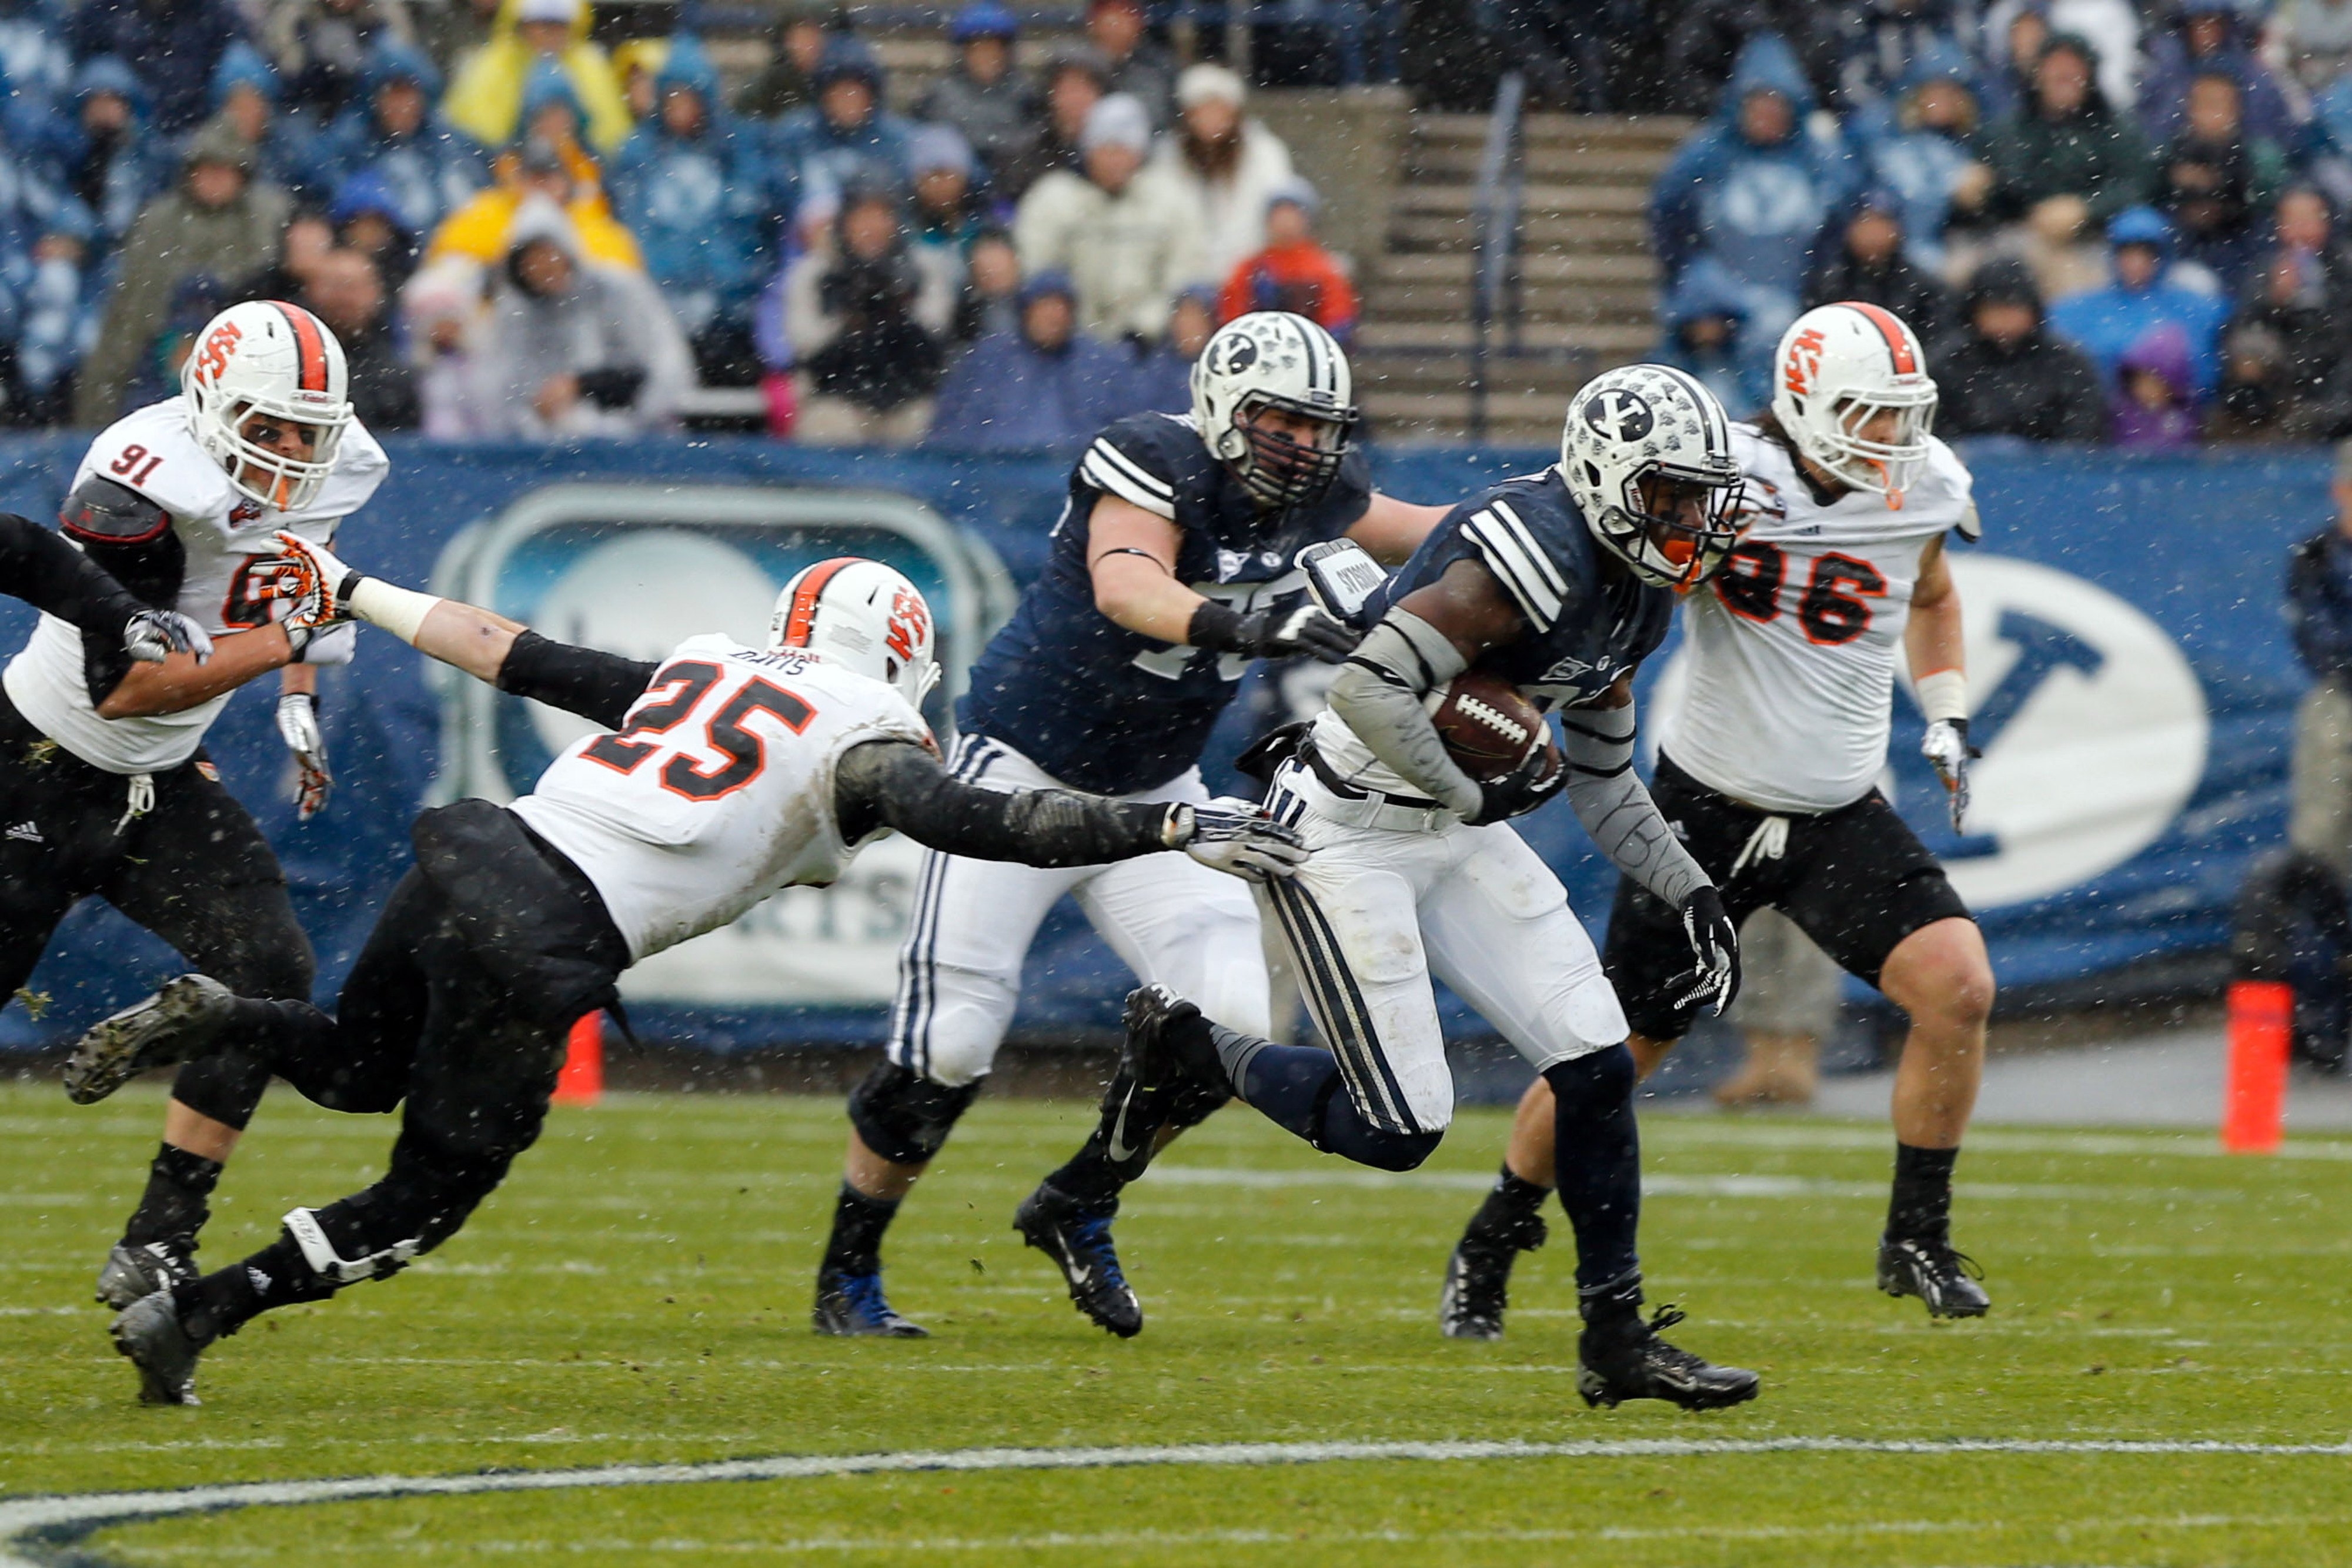 Can Idaho State's defense improve from last season? the Utah Utes find out today at 5:30 pm MT.